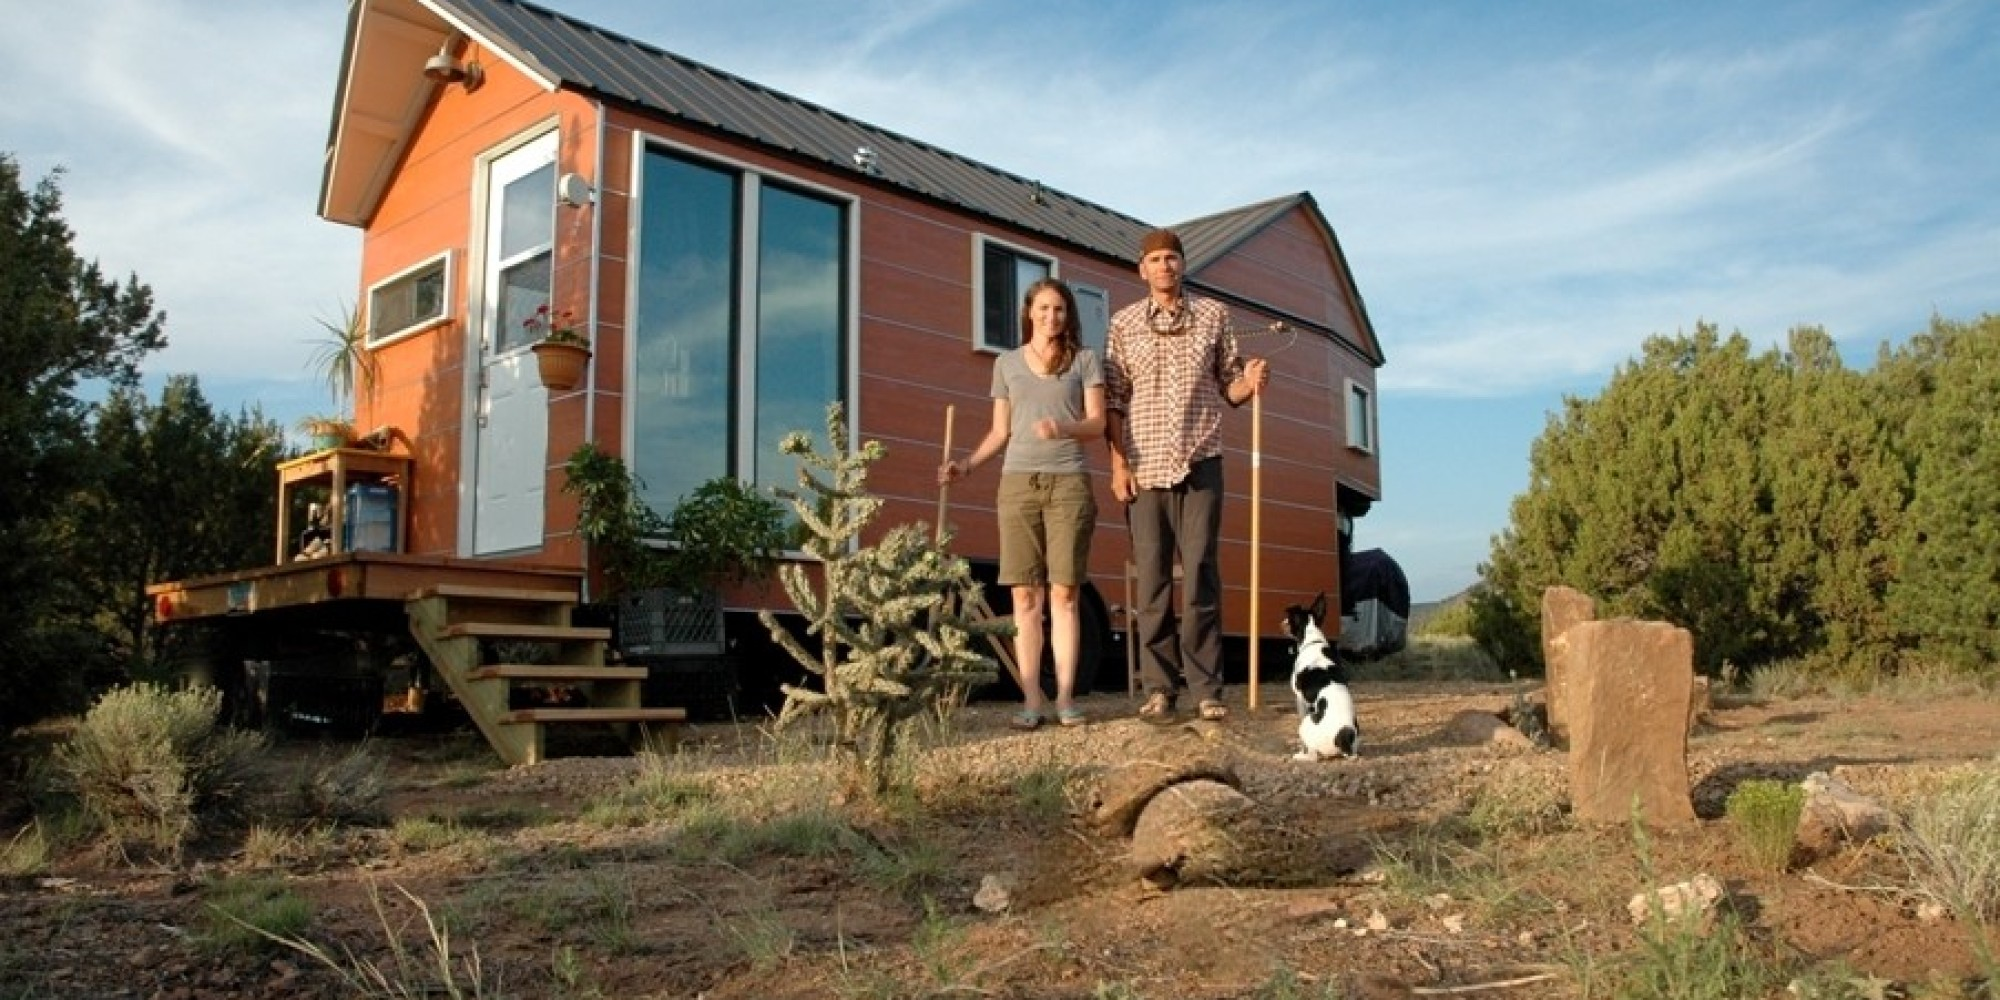 6 Tiny Homes That Would Be Perfect Starter Houses For